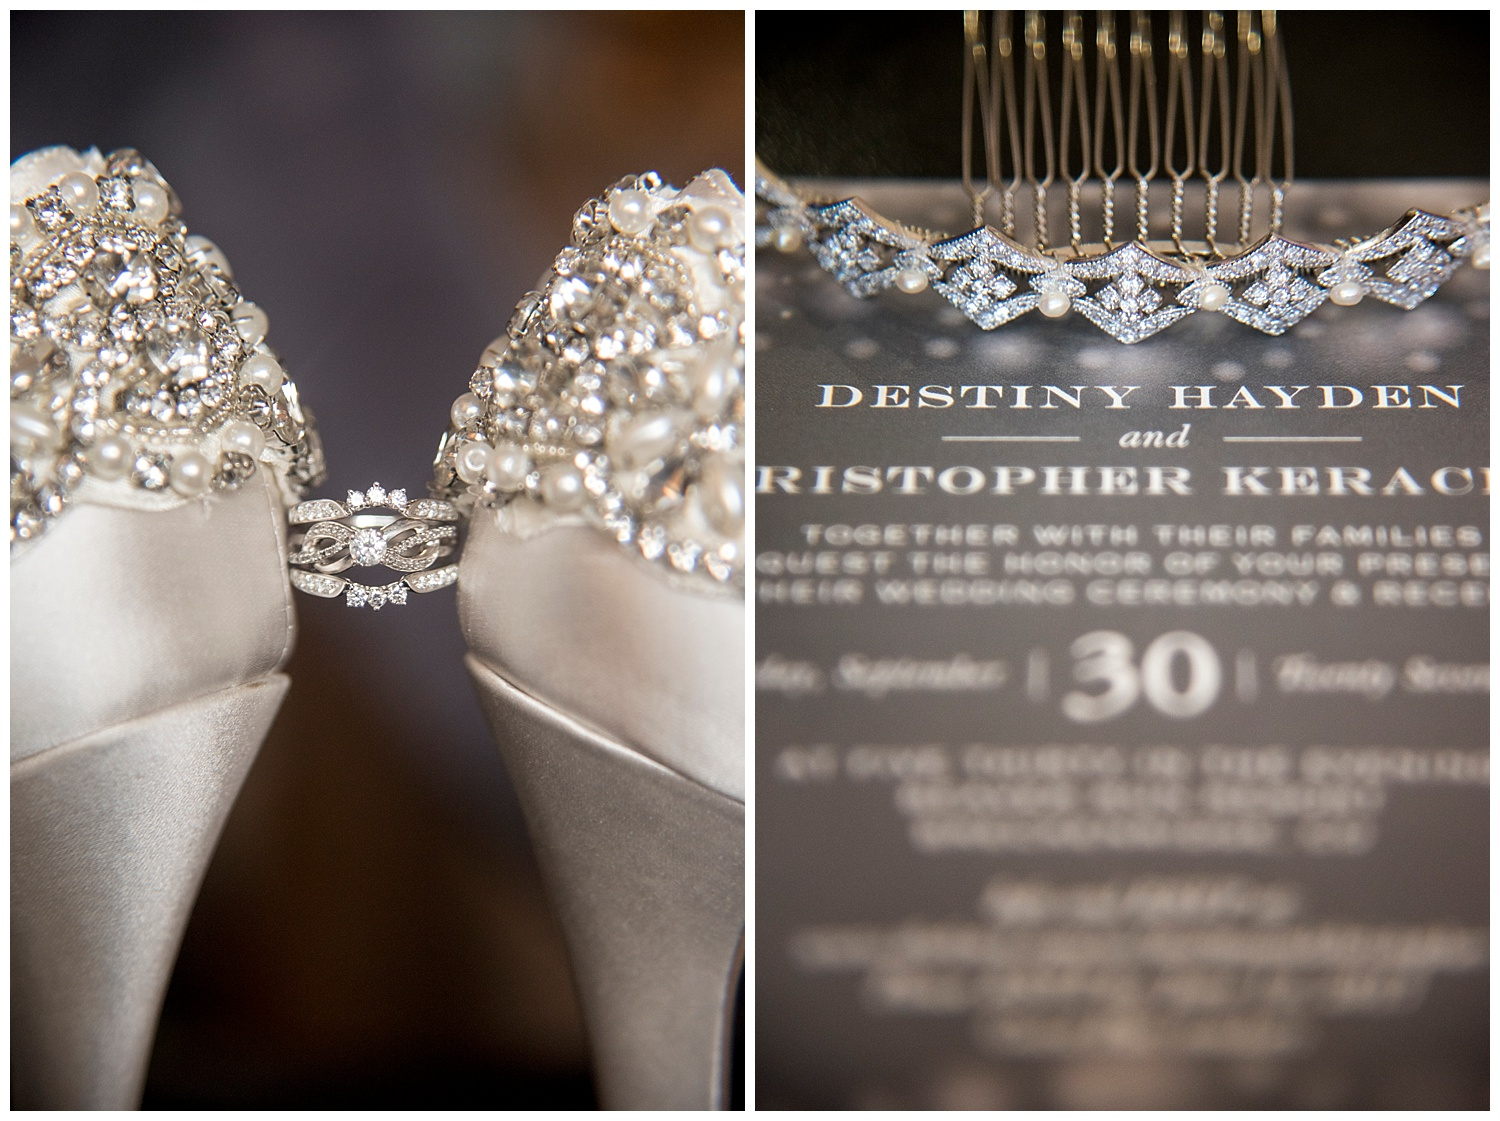 Detail Shot of Ring & Program | Chris & Destiny's Destination Wedding | Breckenridge Wedding Photographer | Colorado Farm Wedding Photographer | Apollo Fields Wedding Photojournalism